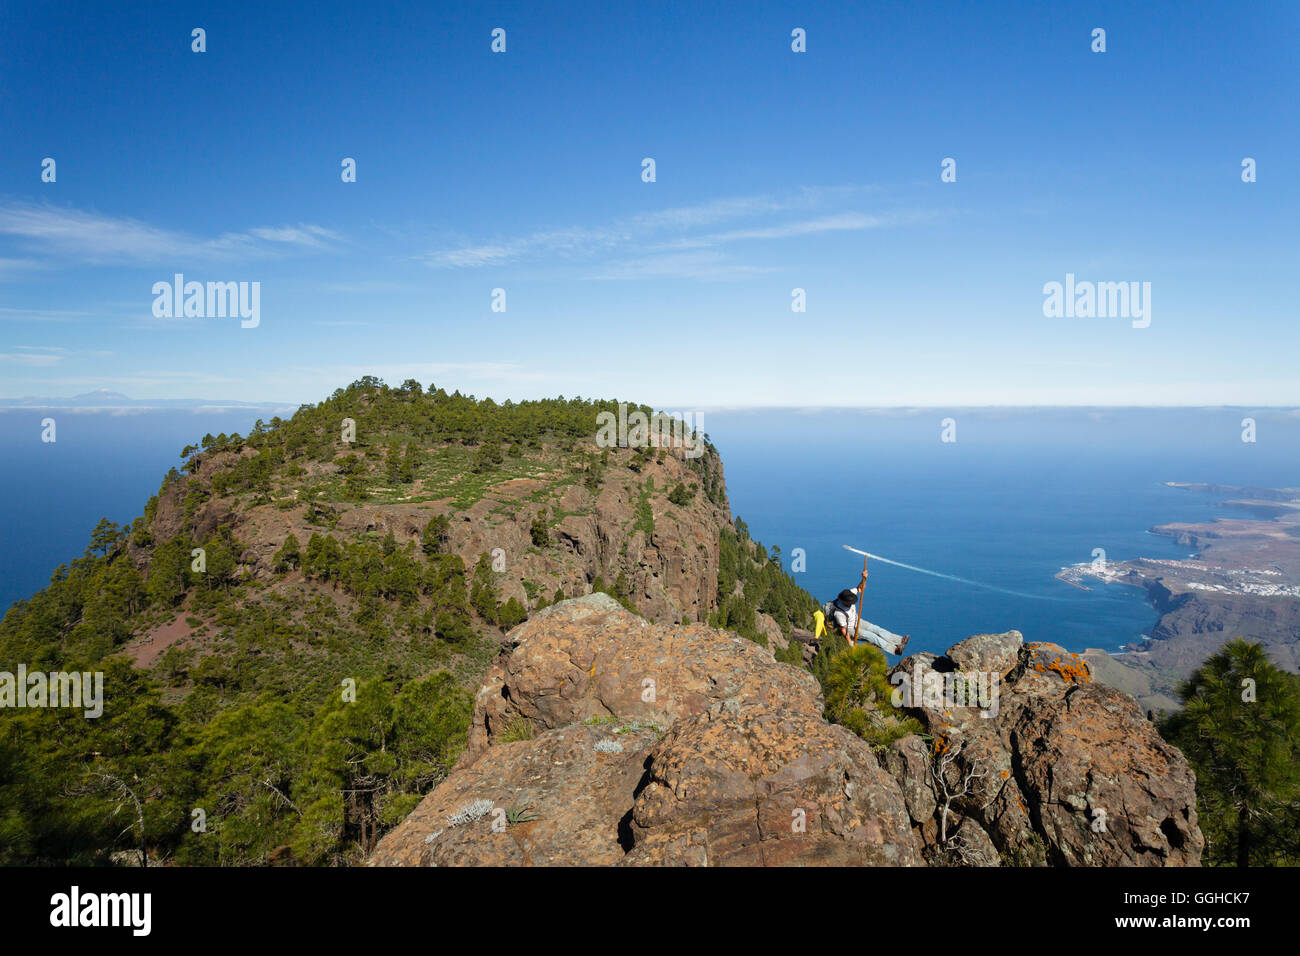 hiker with shepherd´s crook, view from Faneque mountain to Puerto de las Nieves and Agaete, mountains, Natural - Stock Image